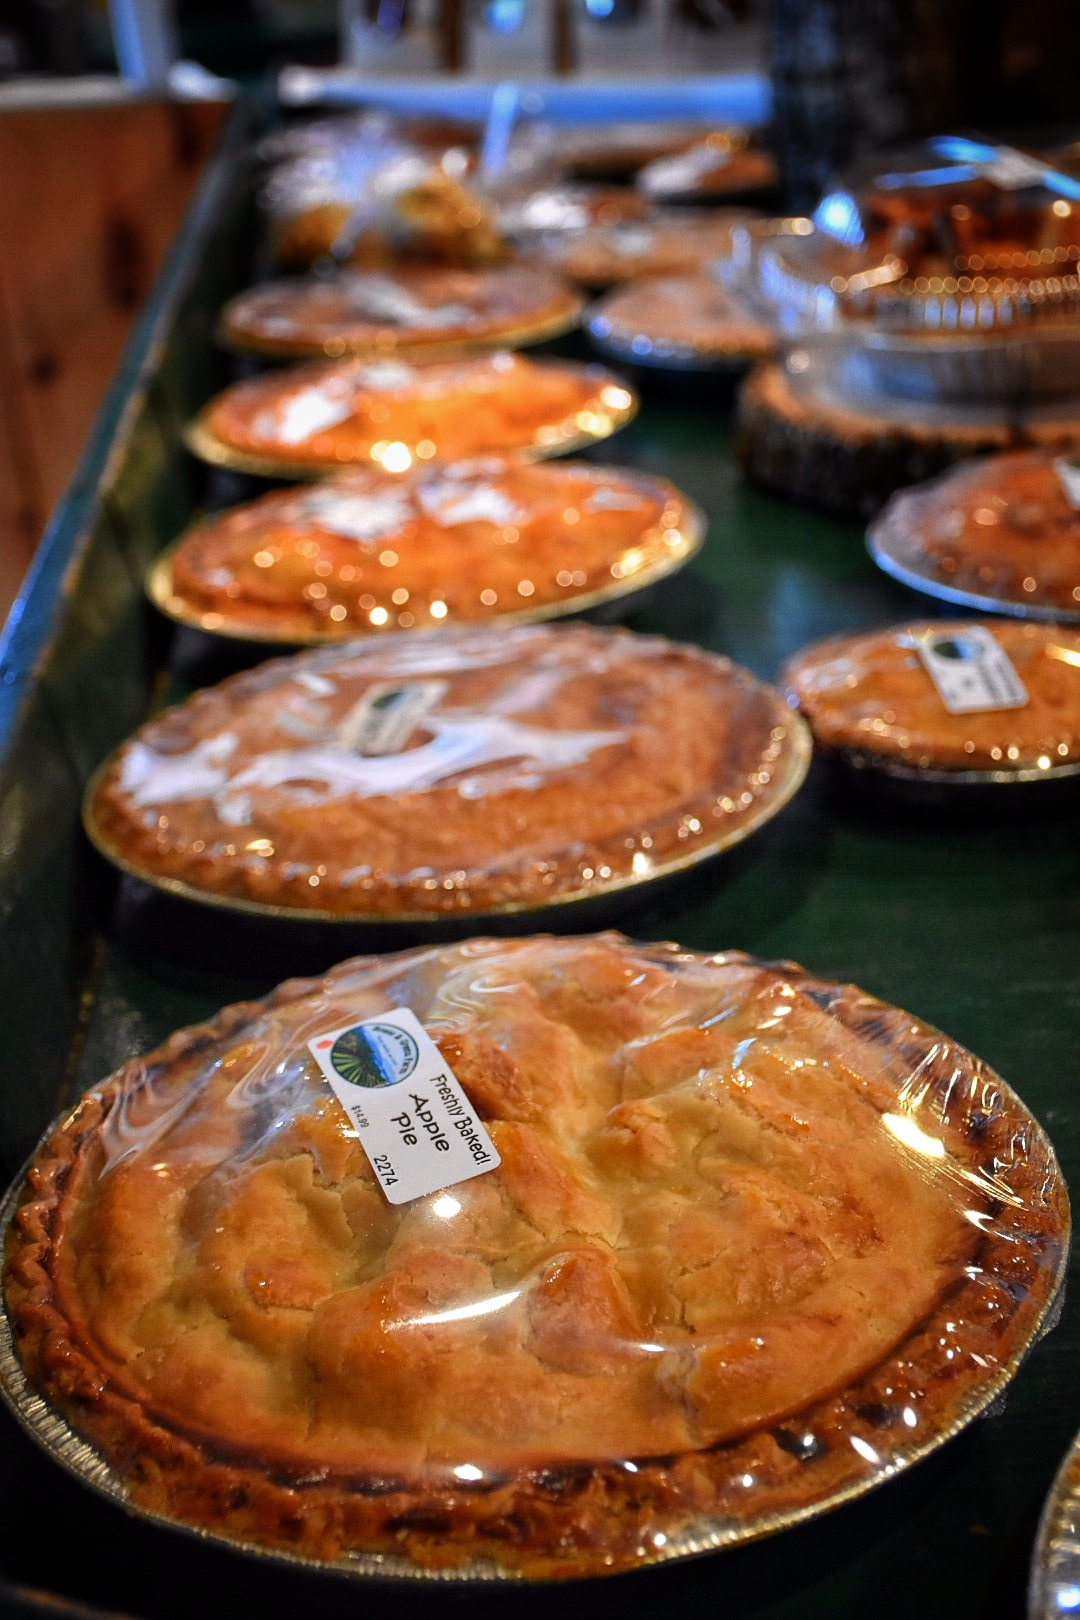 Timber Hill Farm - dessert pies